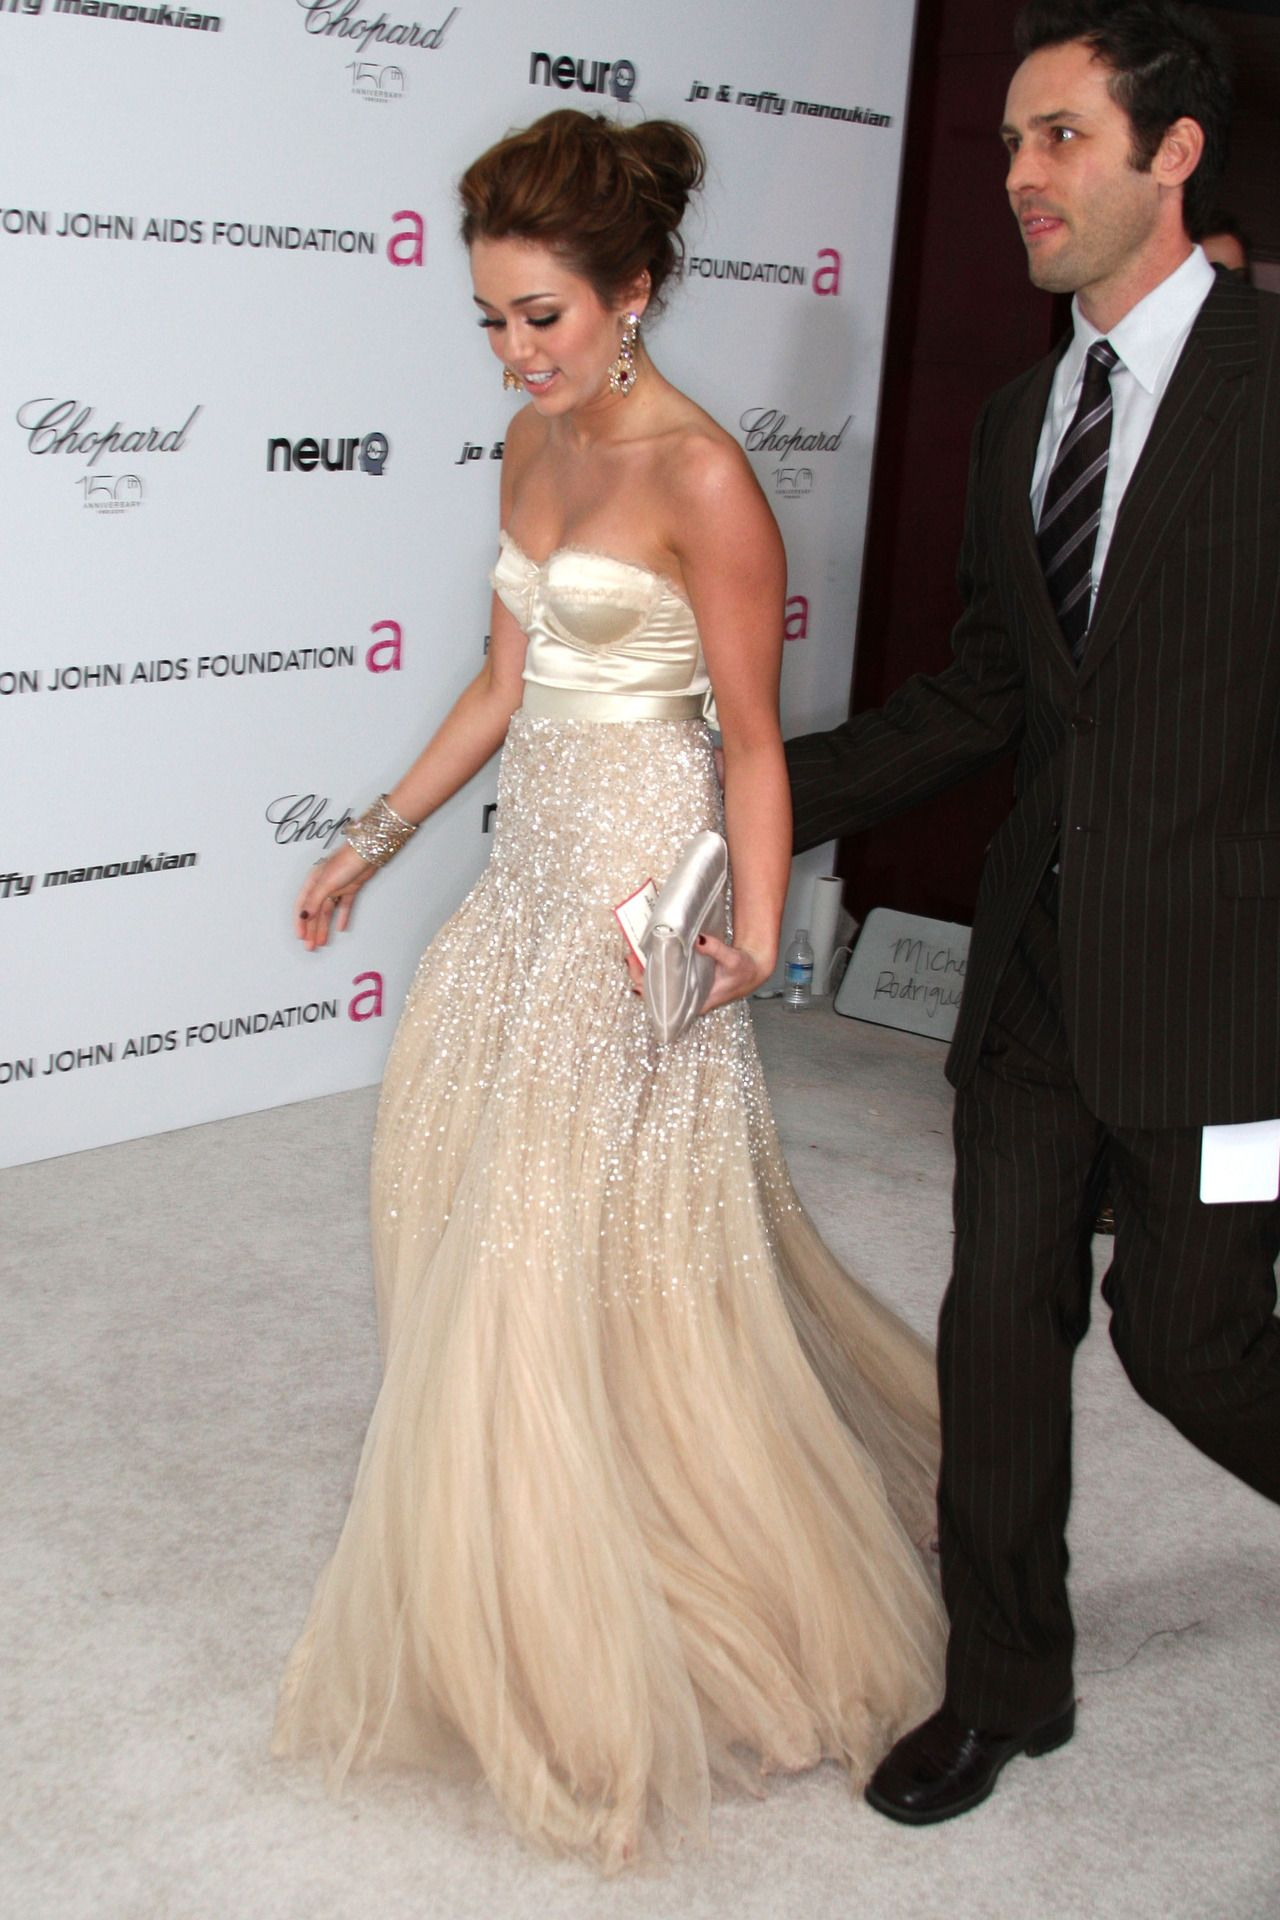 This dress is freakin gorgeous and I hate that celebrities get to ...